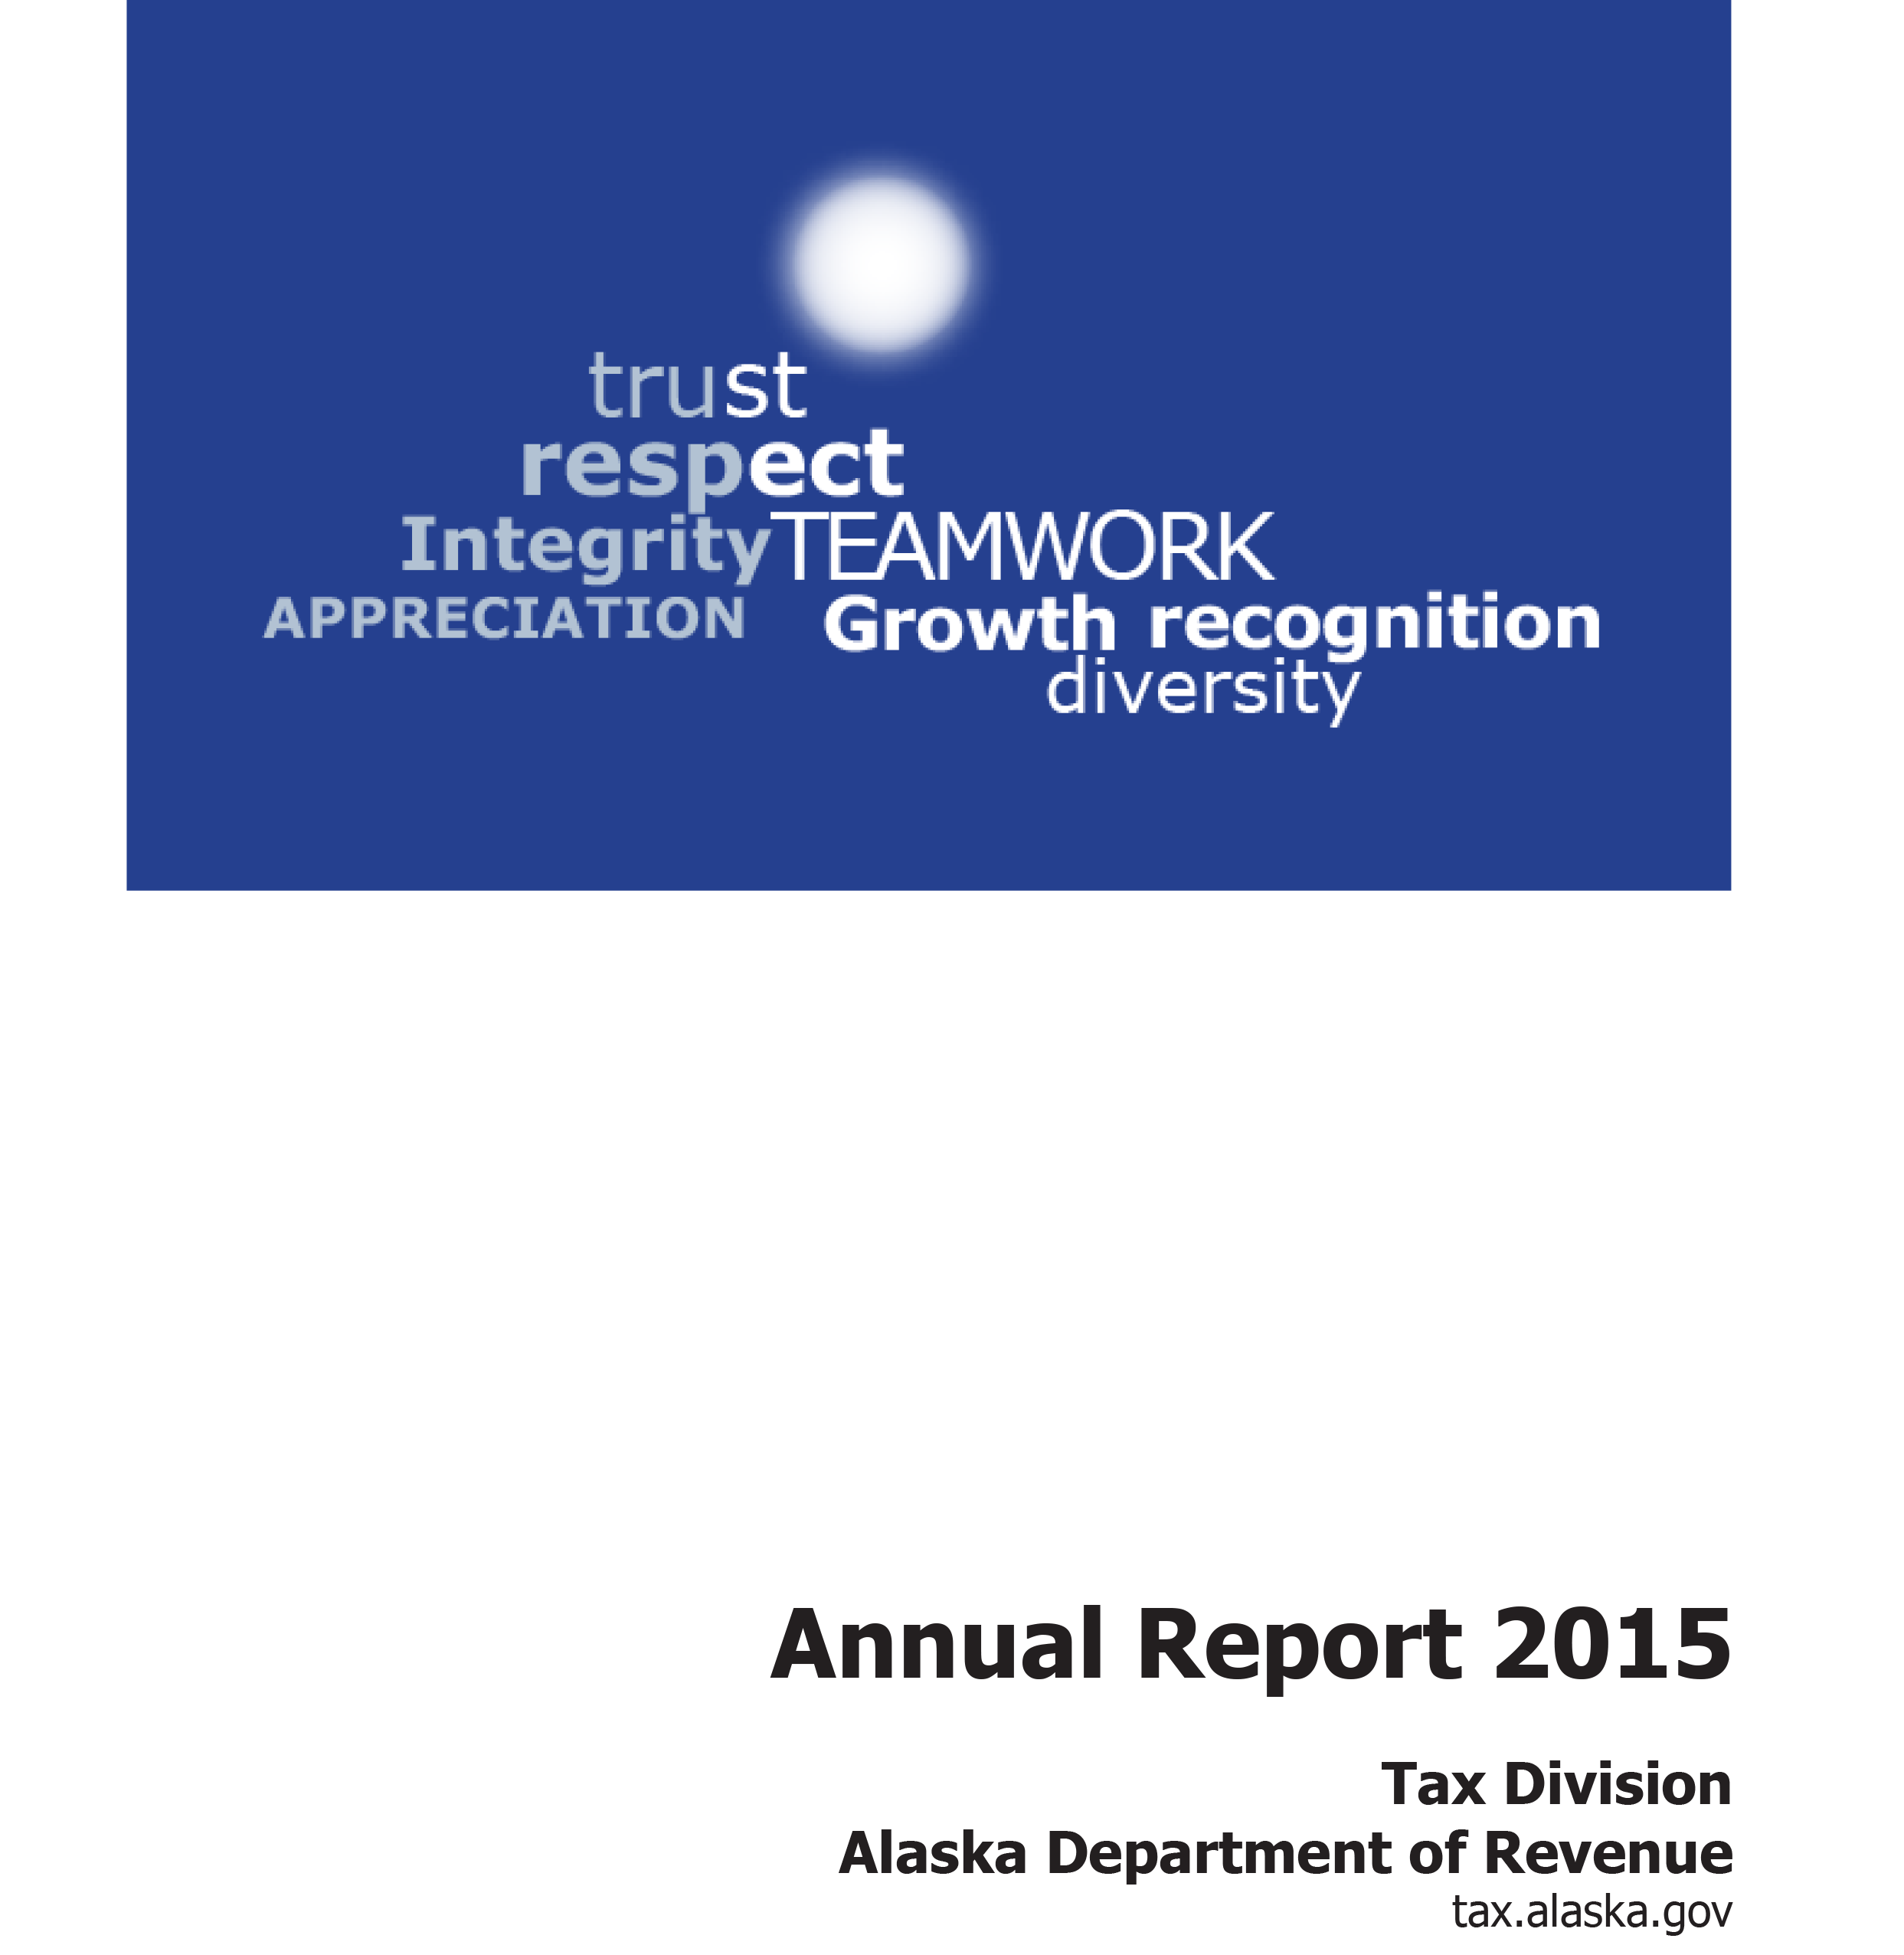 Alaska Department of Revenue - Tax Division - Annual Report